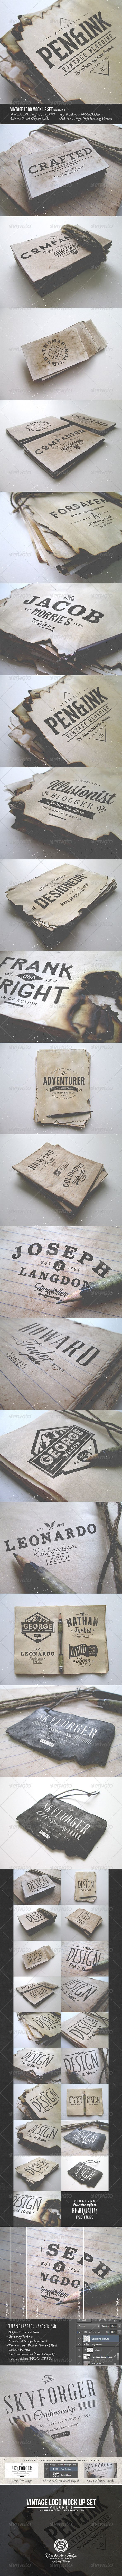 Vintage Logo Mock Up Set Volume 2  — PSD Template #grunge #weathered look #logo…